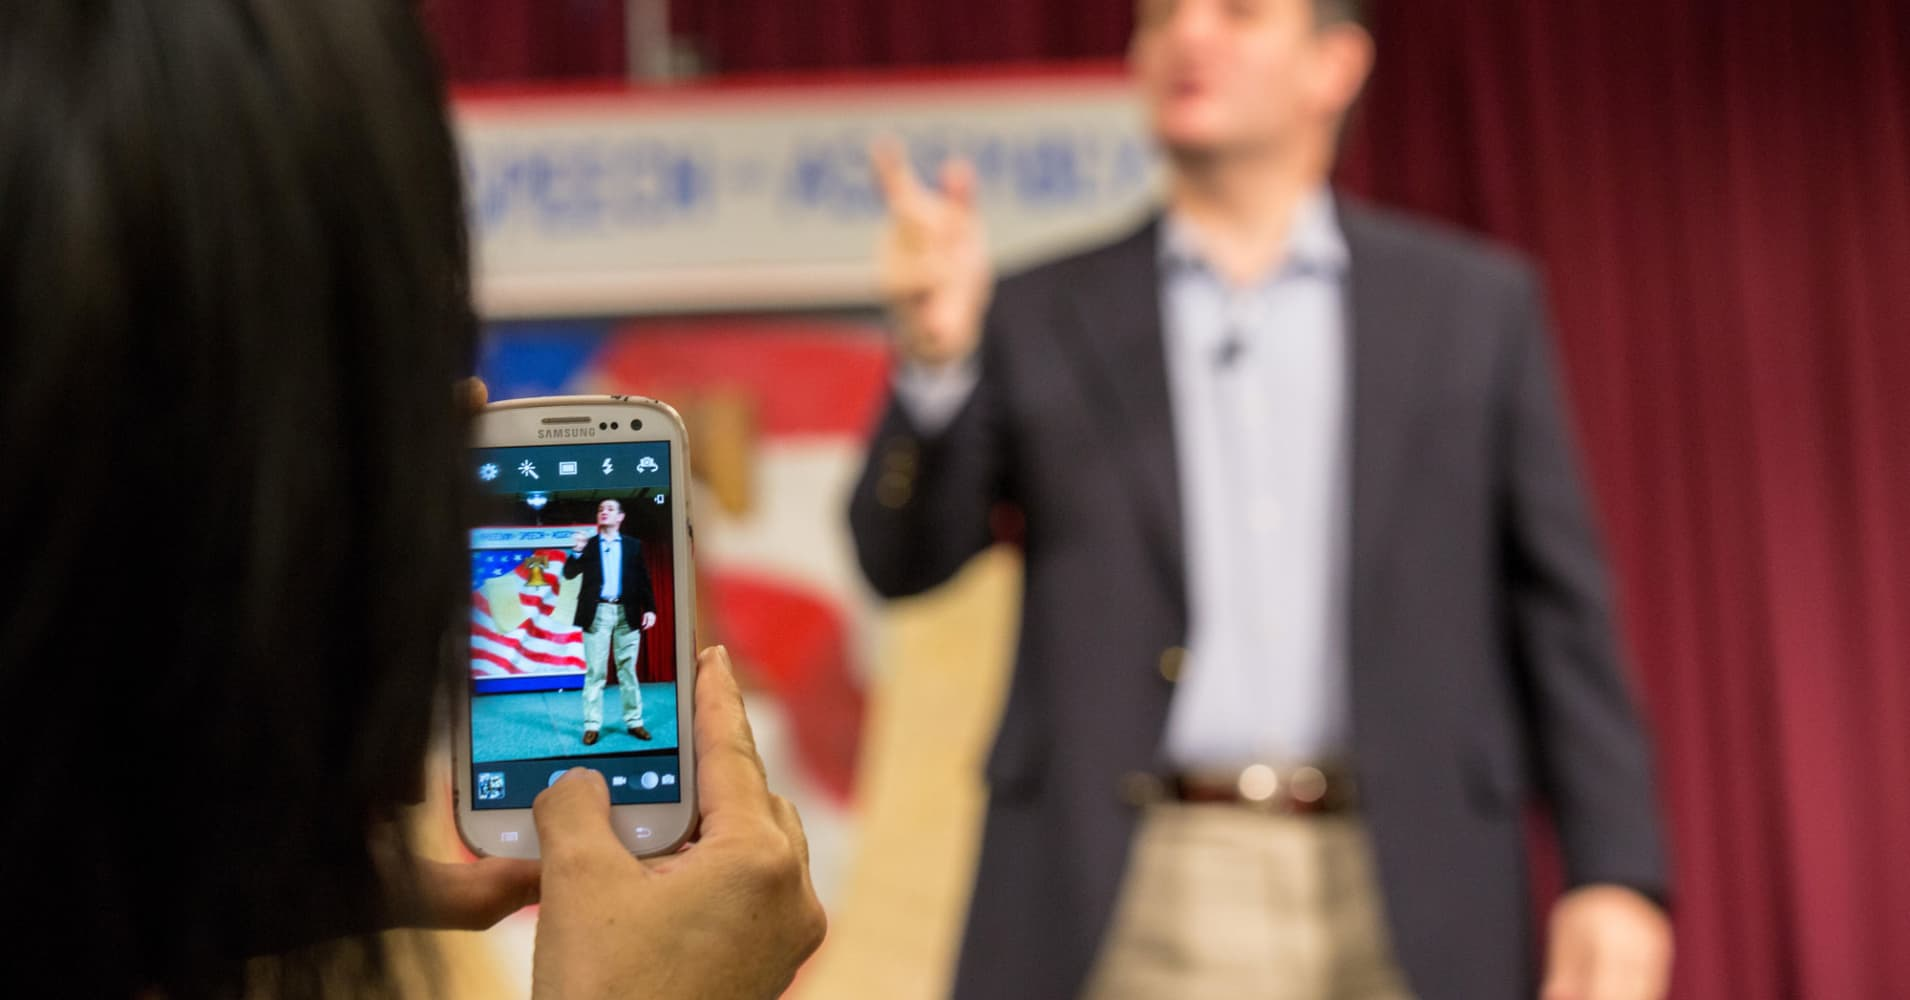 Ted Cruz speaking and seen through a mobile phone